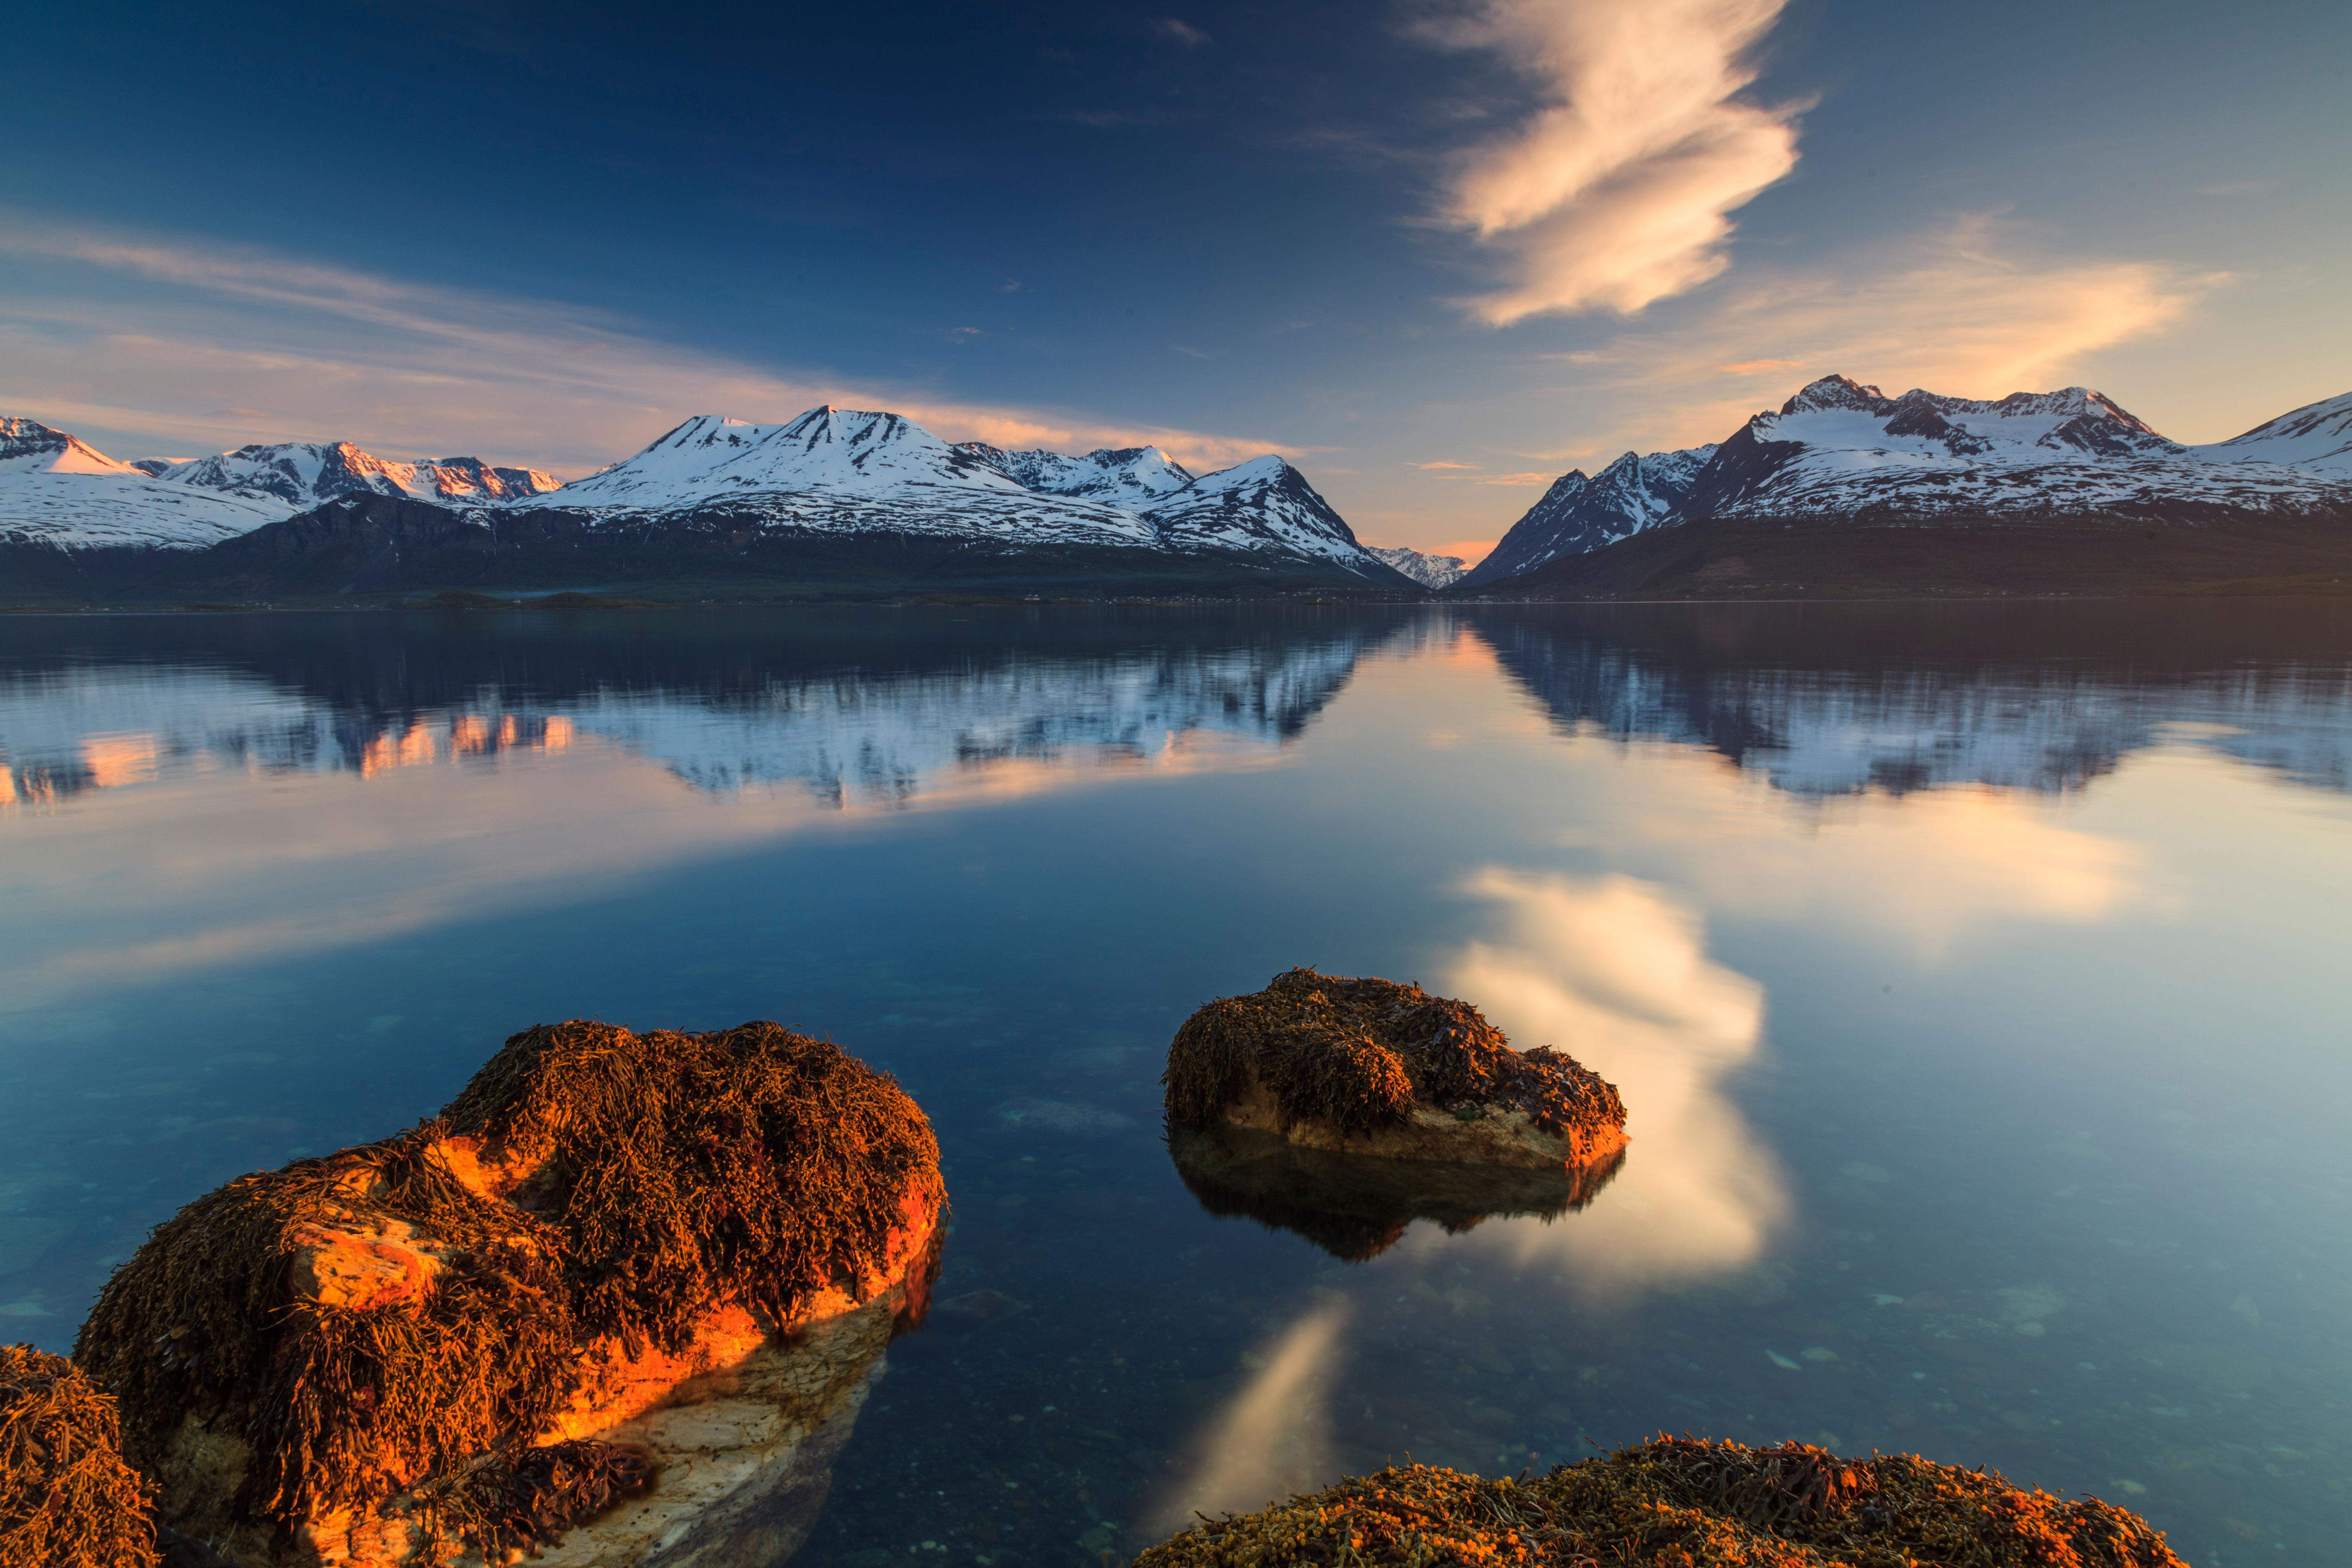 """<p>Inspired by <em>Frozen</em>, new luxury outfitters, acclaimed restaurants, and avant-garde haunts, Norway is going prime time. Luxury cruises do the fjords well and of course <a href=""""https://www.adventuresbydisney.com"""" rel=""""nofollow noopener"""" target=""""_blank"""" data-ylk=""""slk:Adventures by Disney"""" class=""""link rapid-noclick-resp""""><strong>Adventures by Disney</strong></a> has staked its claim with an amazing <em>Frozen</em>-inspired exploration through Norway that usually sells out the day it opens for sale. Companies like <a href=""""http://www.norwegianadventures.com"""" rel=""""nofollow noopener"""" target=""""_blank"""" data-ylk=""""slk:Norwegian Adventures"""" class=""""link rapid-noclick-resp""""><strong>Norwegian Adventures</strong></a> compensate for the country's lack of remote luxury lodges. Think tricked-out tents with heating, feather down comforters, and full working bathrooms, gourmet chefs, and of course a personal masseuse -- in the middle of the epic Northern wilderness.</p>"""